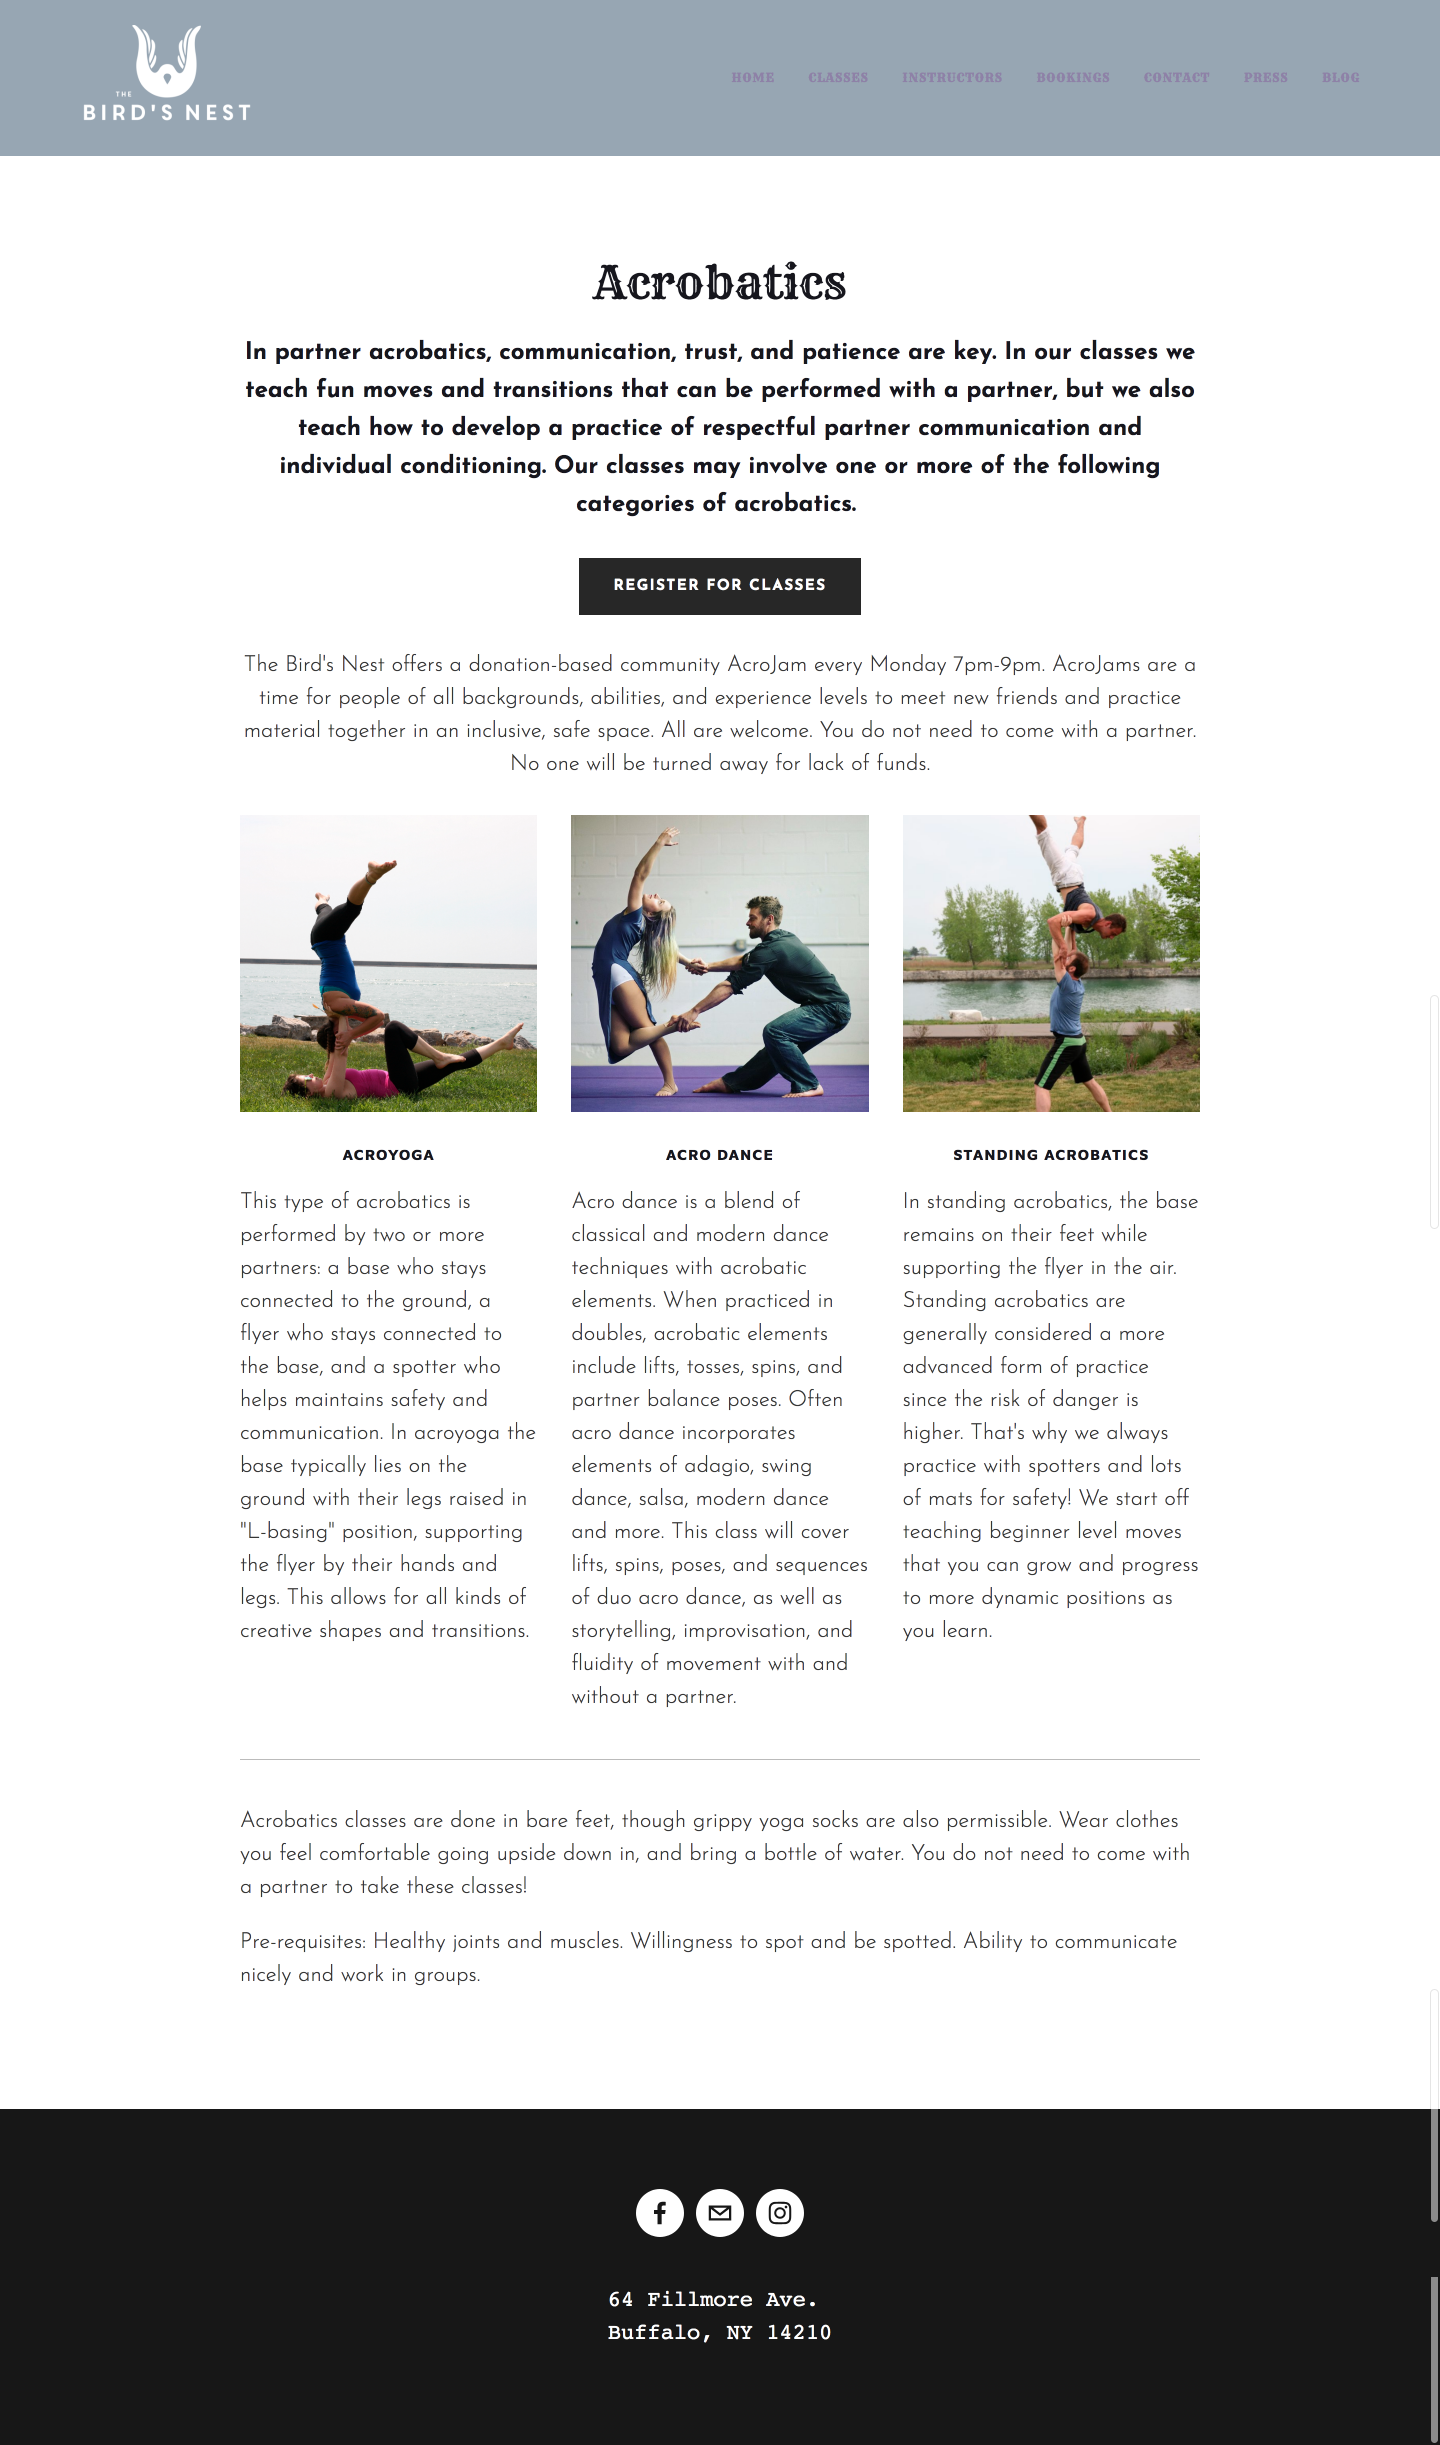 """Class Page: Acrobatics. """"In acrobatics, communication, trust, and patience are key. In our classes we teach fun moves and transitions that can be performed with a partner, but we also teach how to develop a practice of respectful partner communication and individual conditioning. Our classes may involve one or more of the following categories of acrobatics: AcroYoga. Acro Dance. Standing Acrobatics."""""""